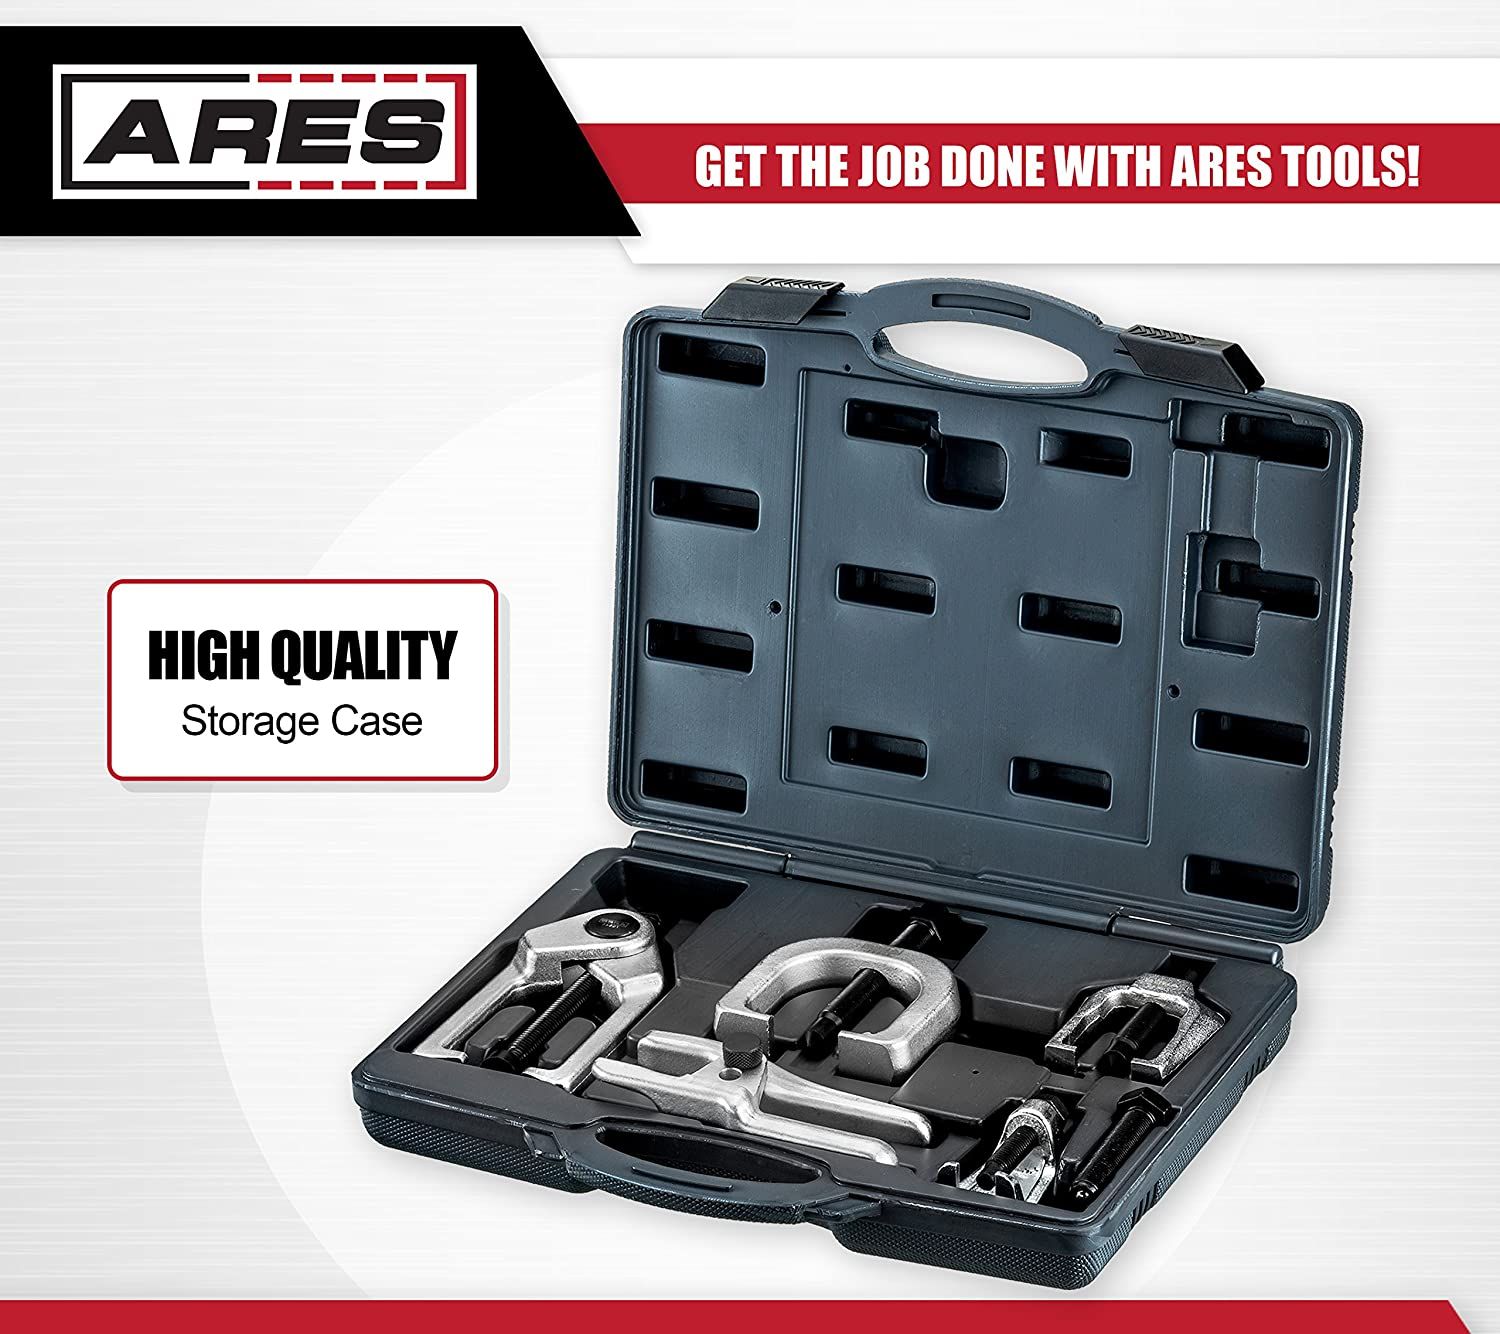 ARES 70844-19mm Tie Rod End Tool Heat Treated Drop Forged Steel Body and Thrust Bolt